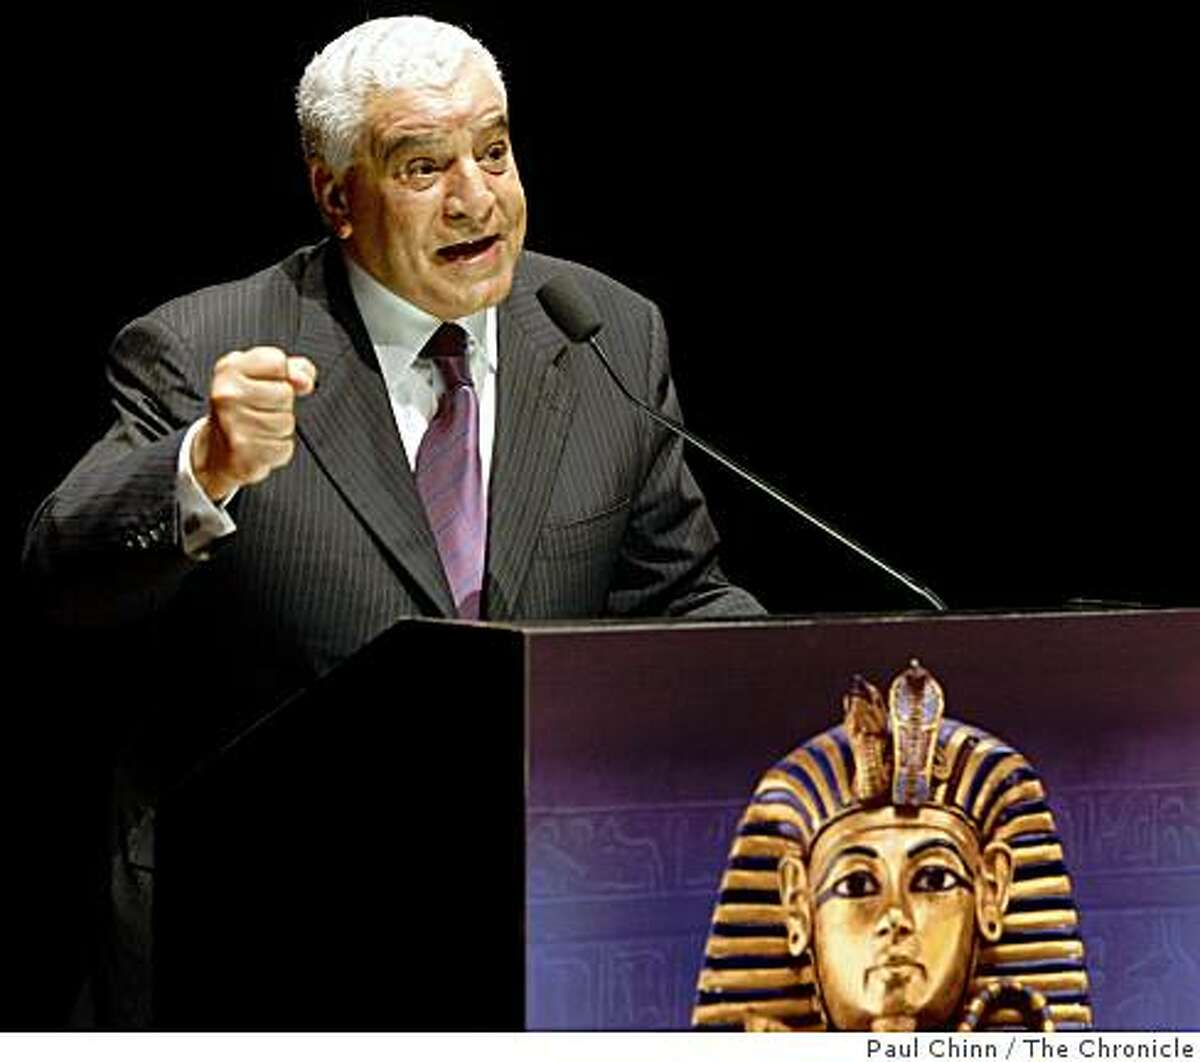 Dr. Zahi Hawass, secretary general of the Supreme Council of Antiquities in Egypt, introduces the opening of the King Tut exhibit at the de Young Museum in San Francisco, Calif., on Wednesday, June 24, 2009.